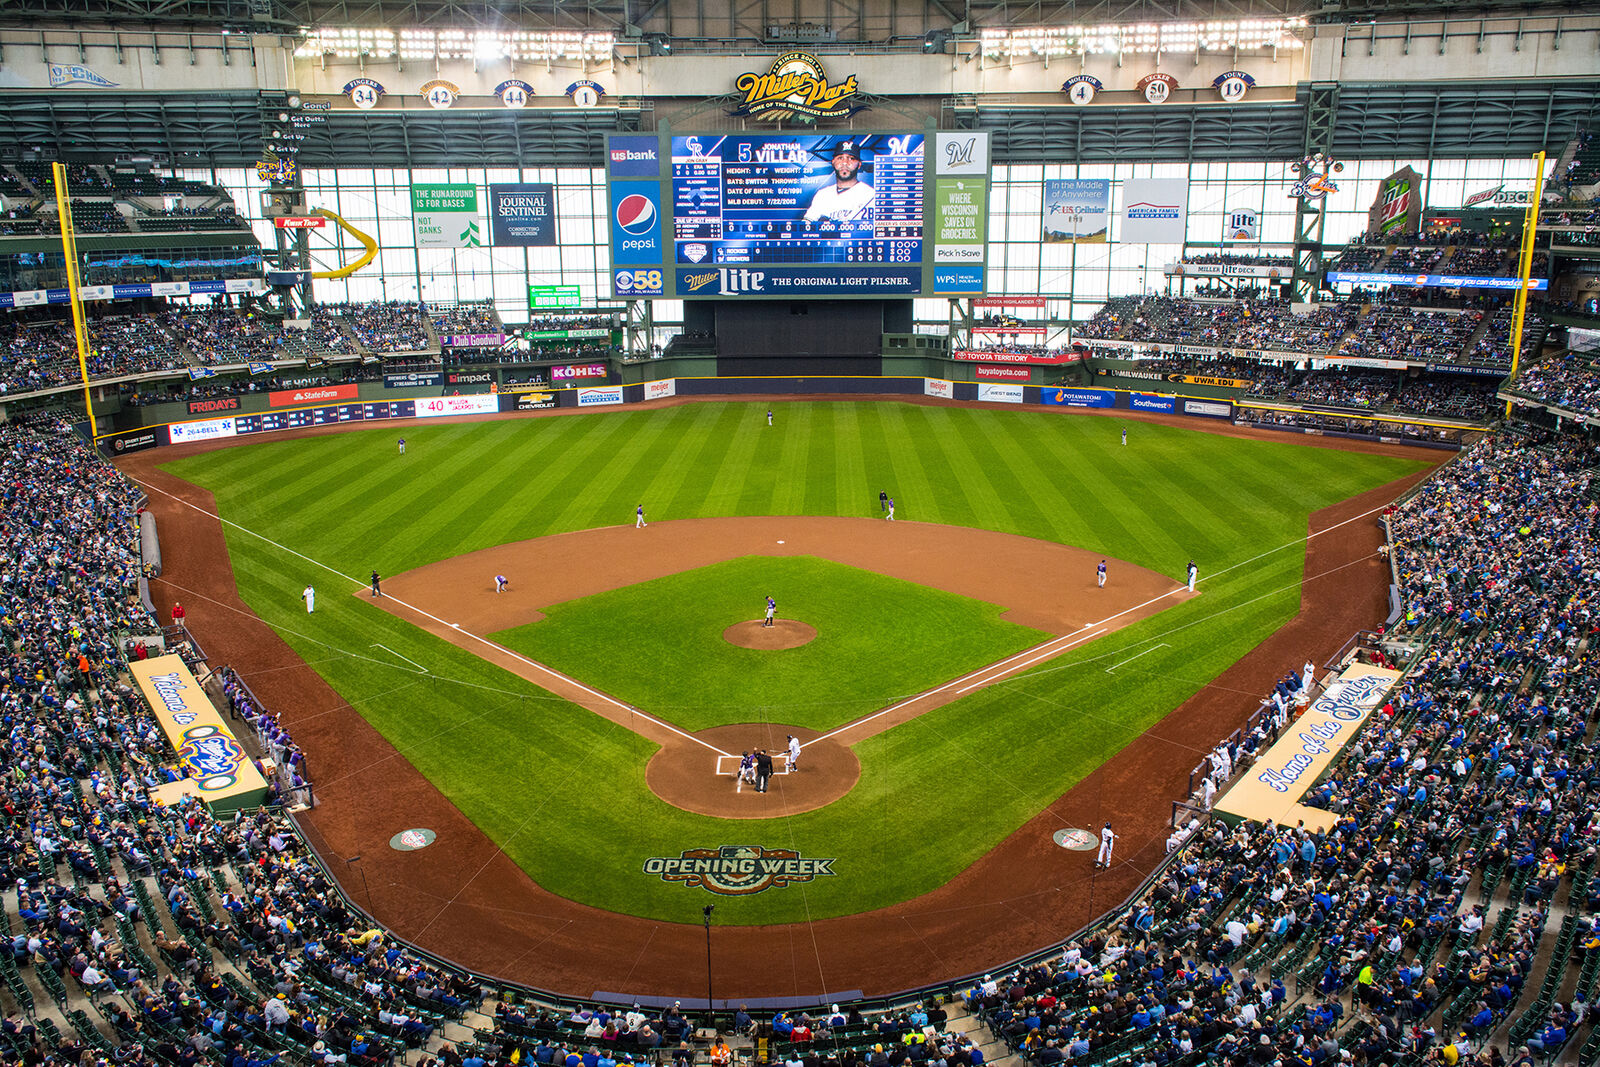 Oakland Athletics at Milwaukee Brewers Spring Training Tickets (Split Squad)